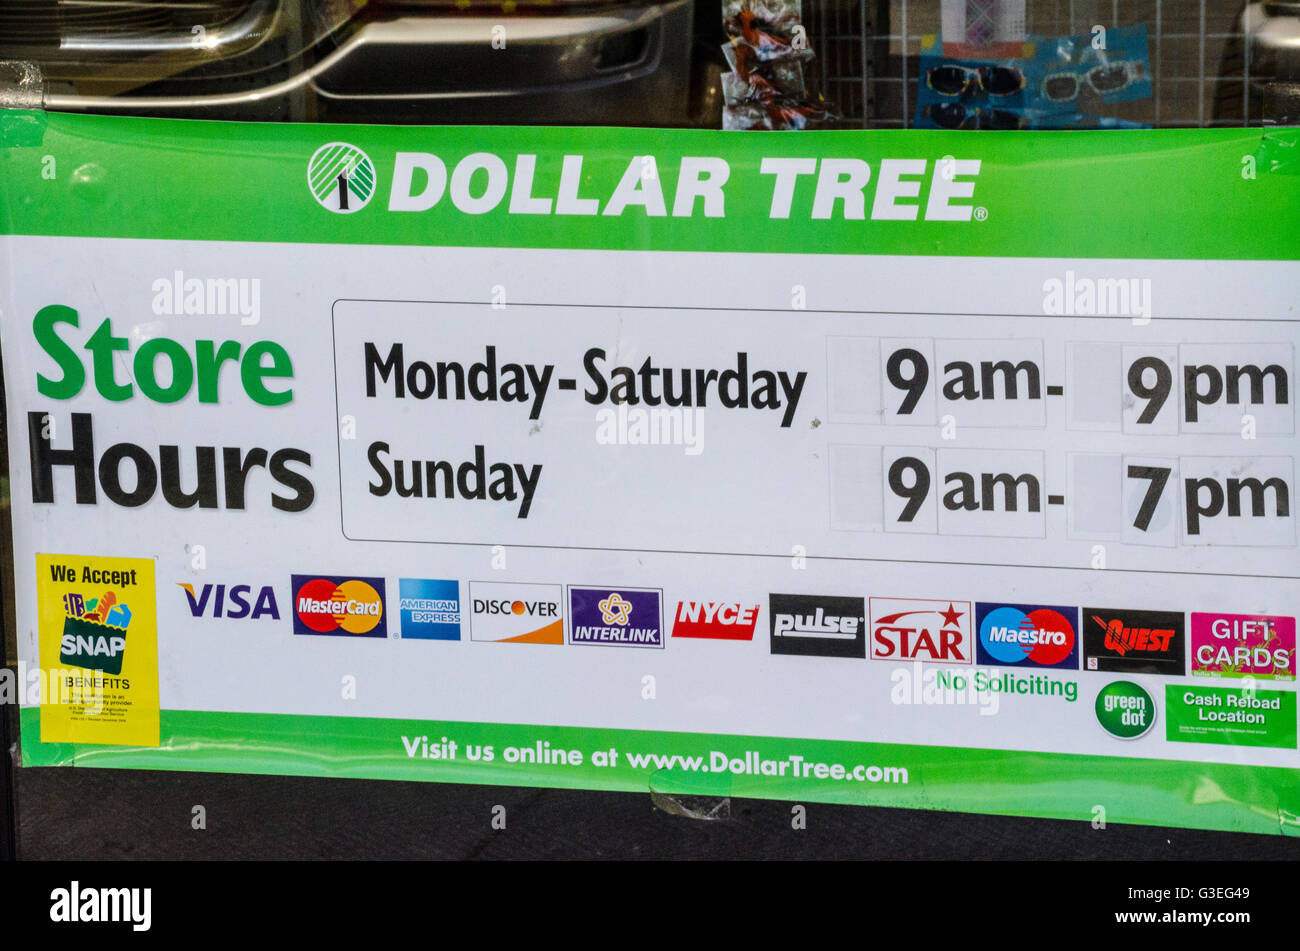 Dollar tree roseburg oregon